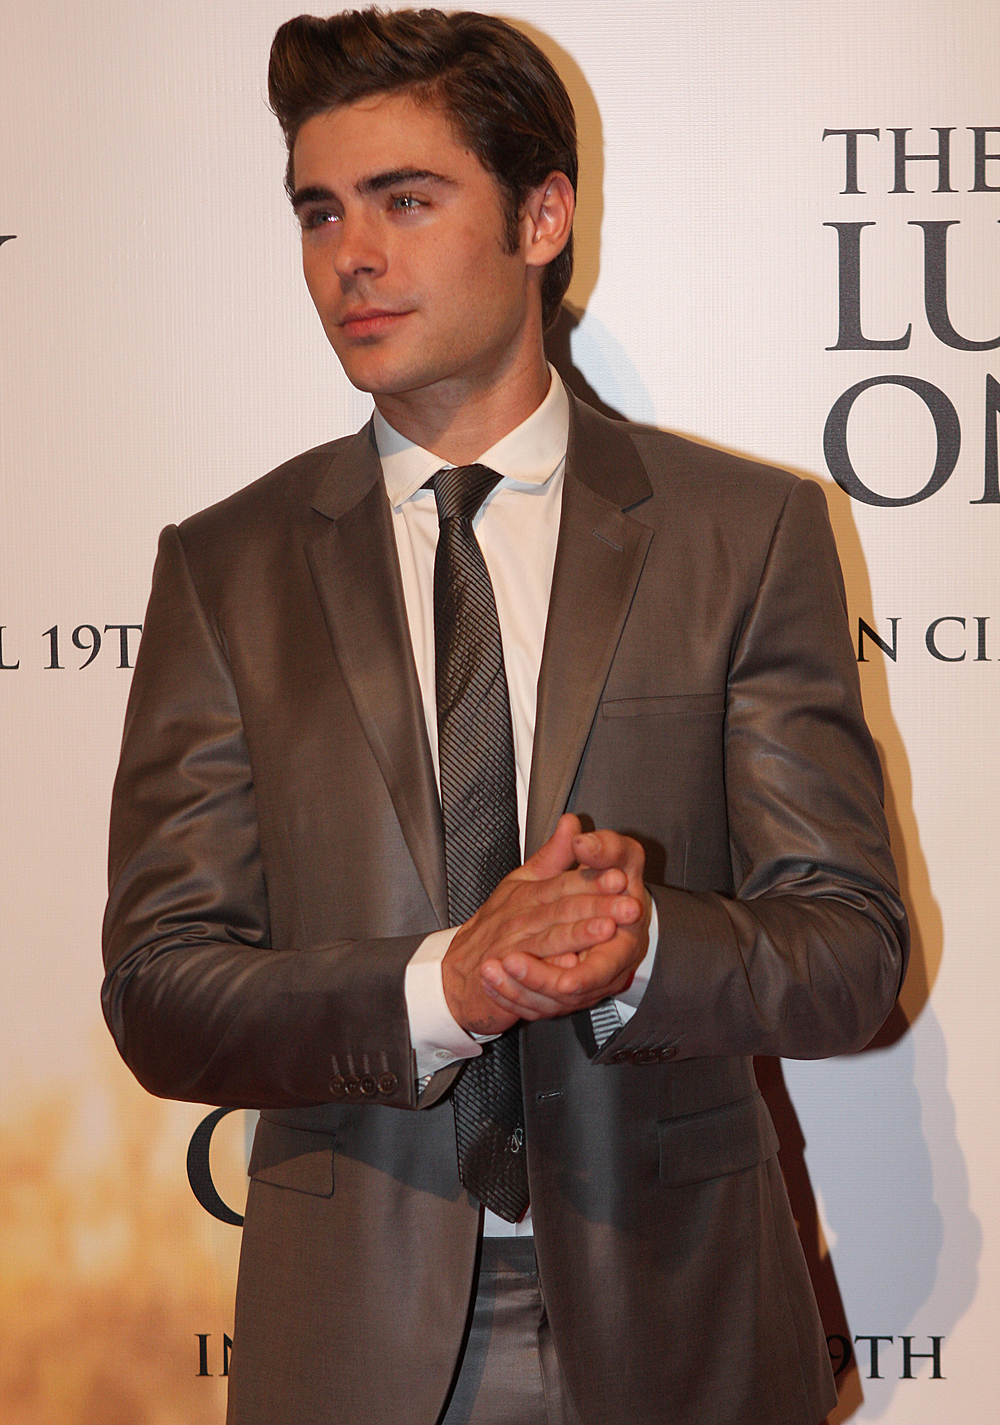 File:Zac Efron, 2012.jpg - Wikimedia Commons